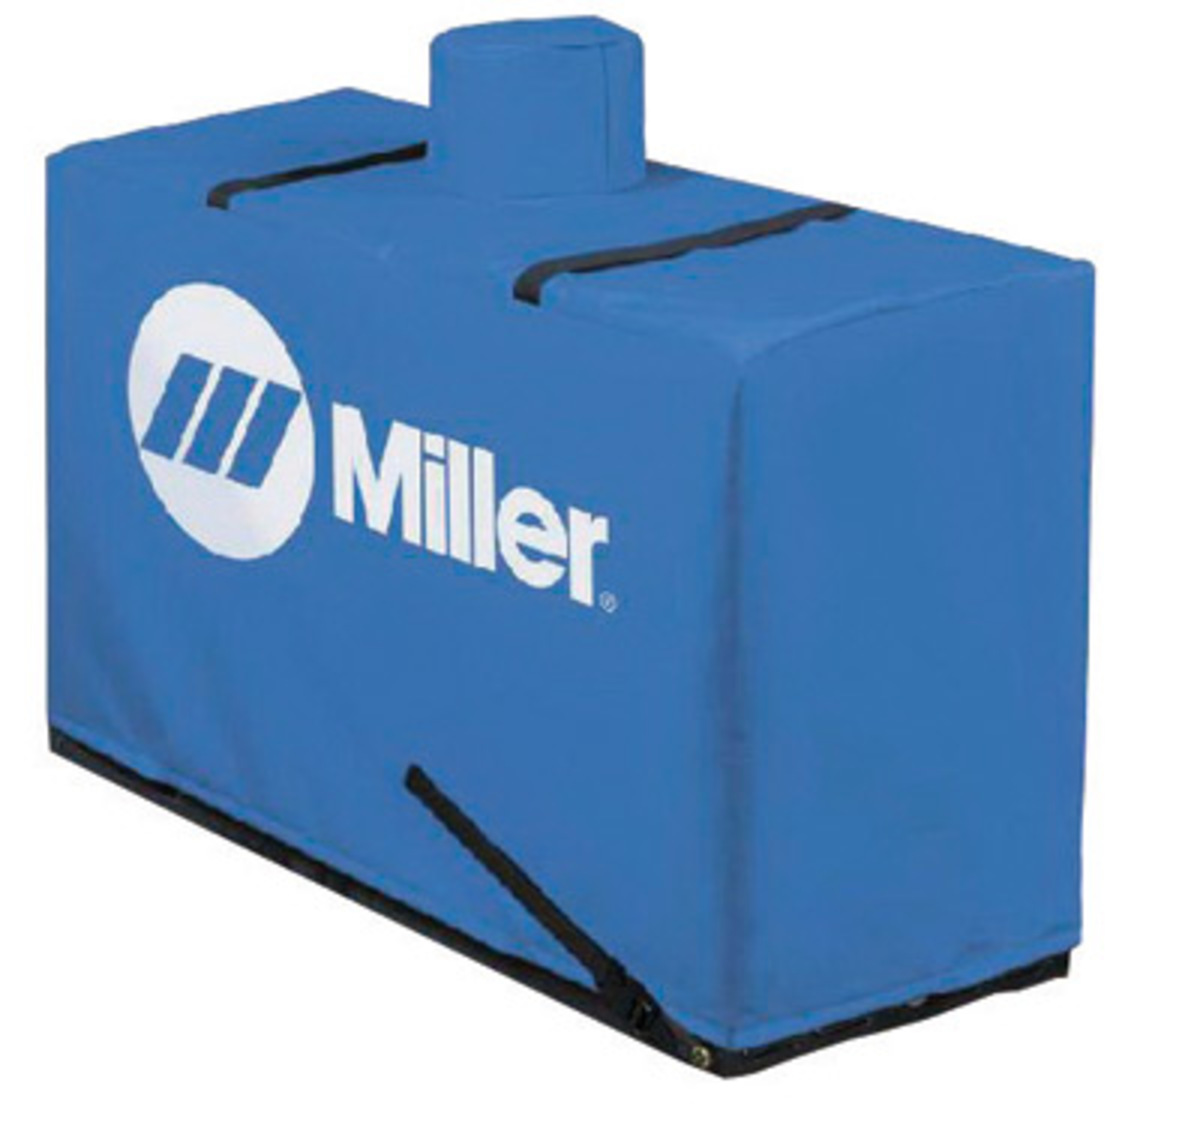 Protective Cover For Miller Bobcat 225250 And Trailblazer 275DC302 in addition Protective Cover For Miller Bobcat 225250 And Trailblazer 275DC302 as well Protective Cover For Miller Bobcat 225250 And Trailblazer 275DC302 as well Parts besides Protective Cover For Miller Bobcat 225250 And Trailblazer 275DC302. on miller bobcat 250 cover